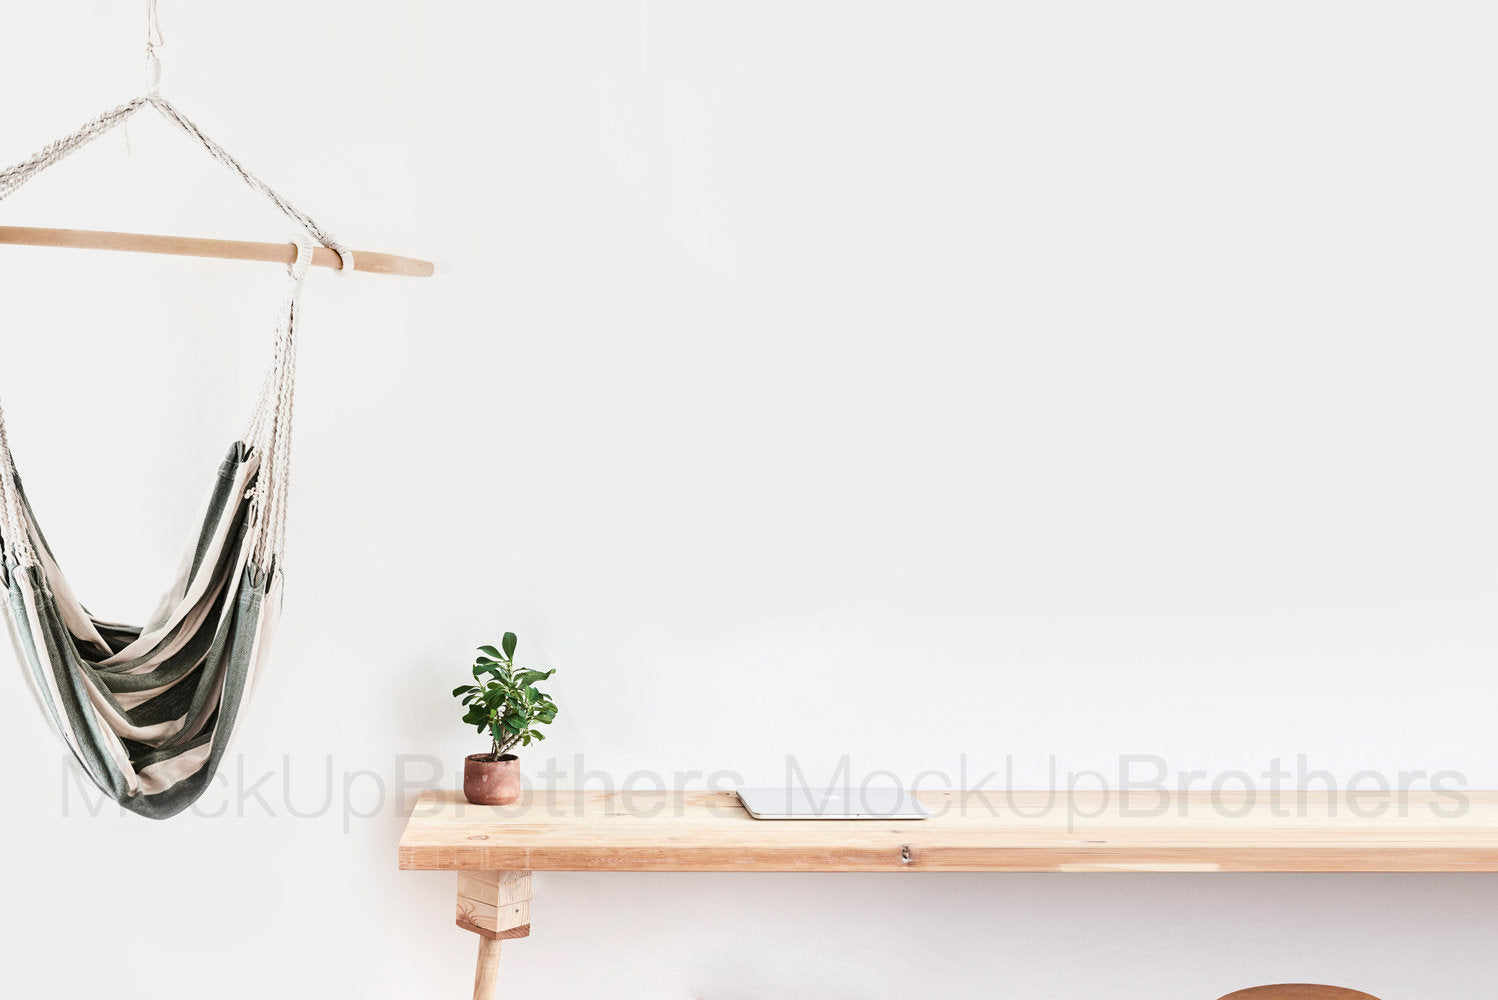 Office interior stock photography by Mockup brothers